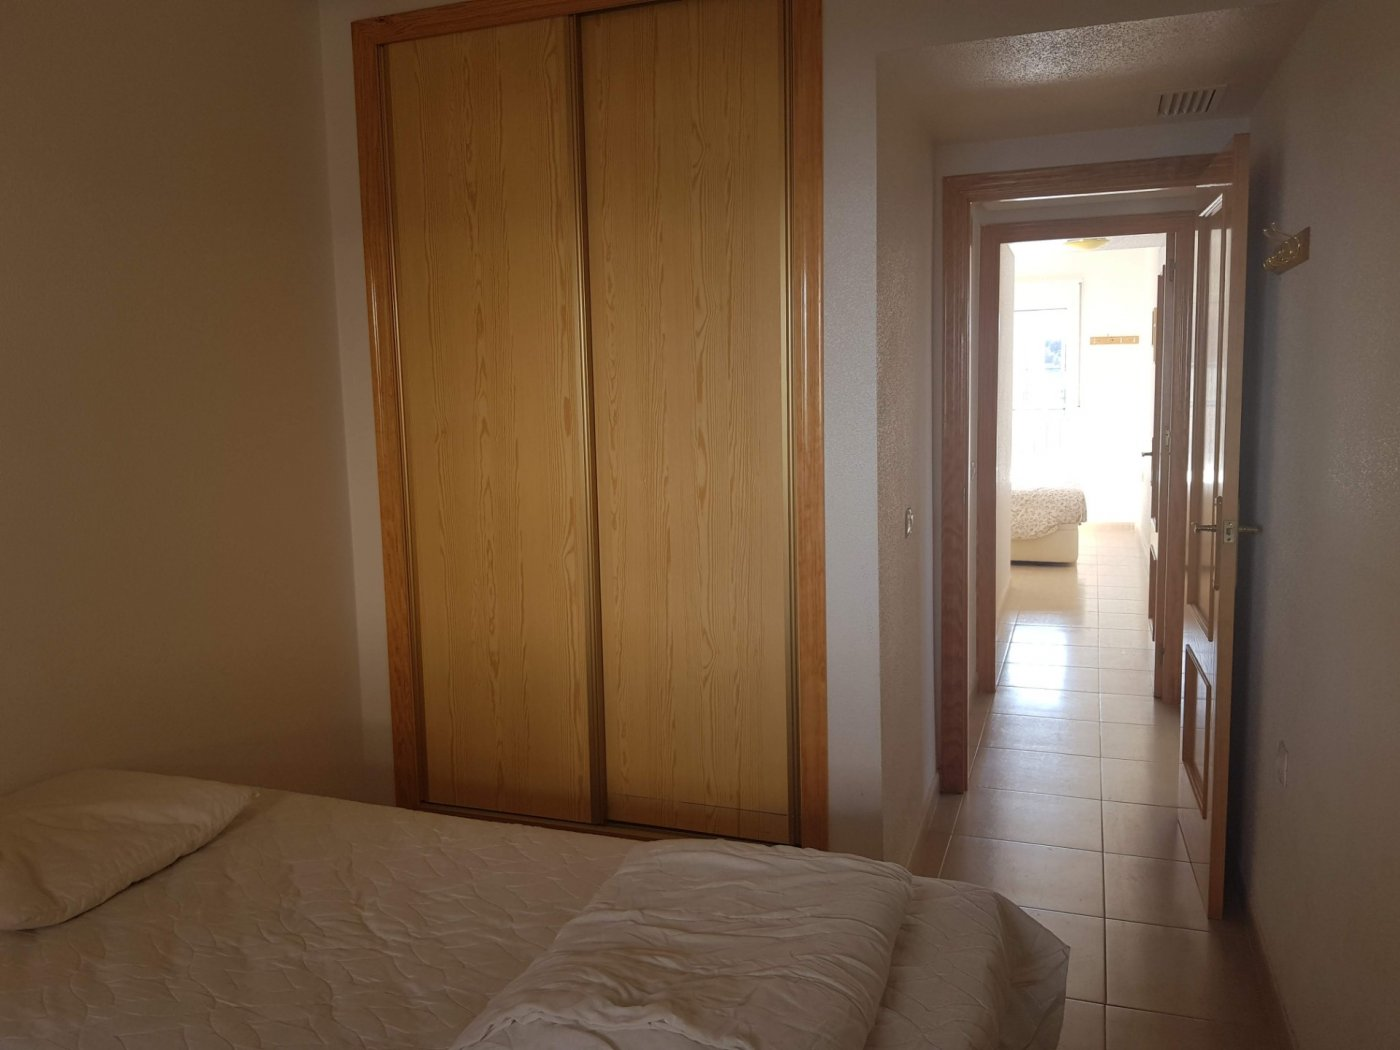 Gallery Image 18 of Fantastic corner apartment on walking distance of beach and shopping centre